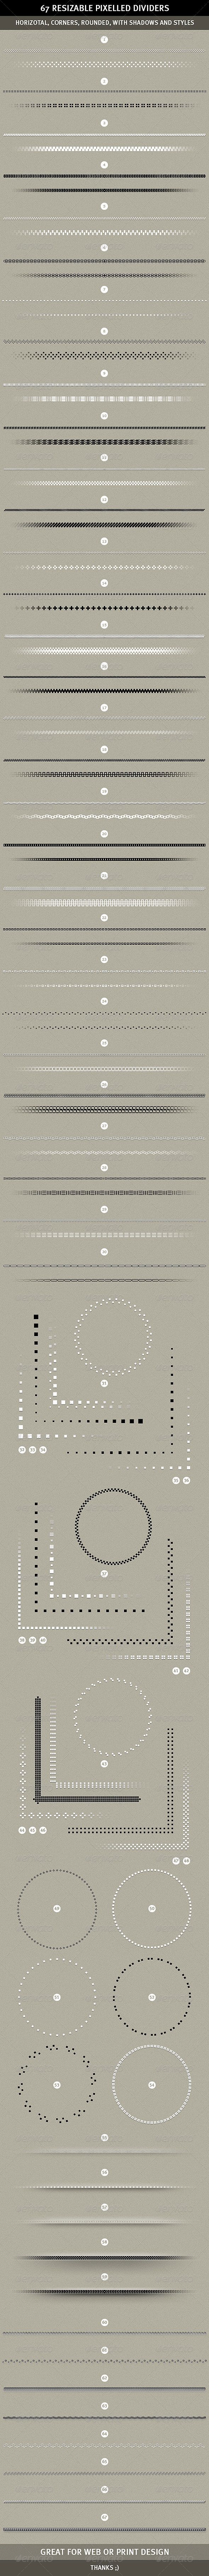 67 Pixelled Resizable Dividers - GraphicRiver Item for Sale